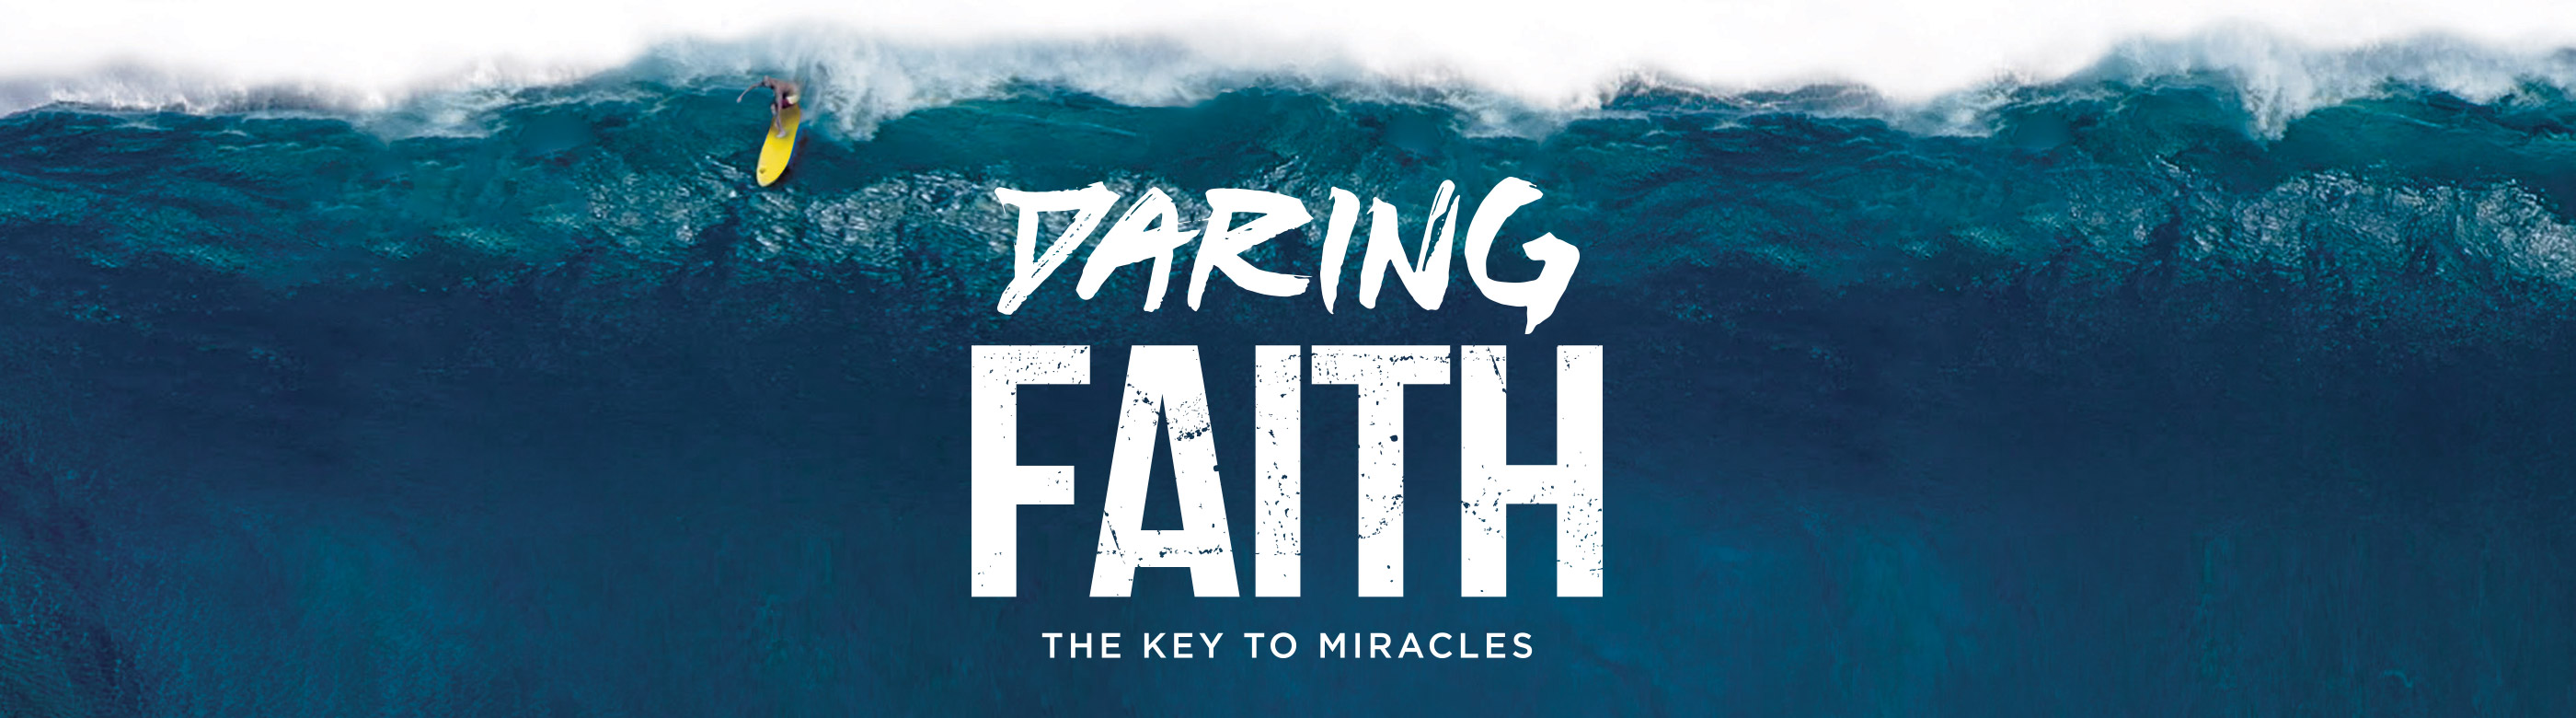 daring faith faq